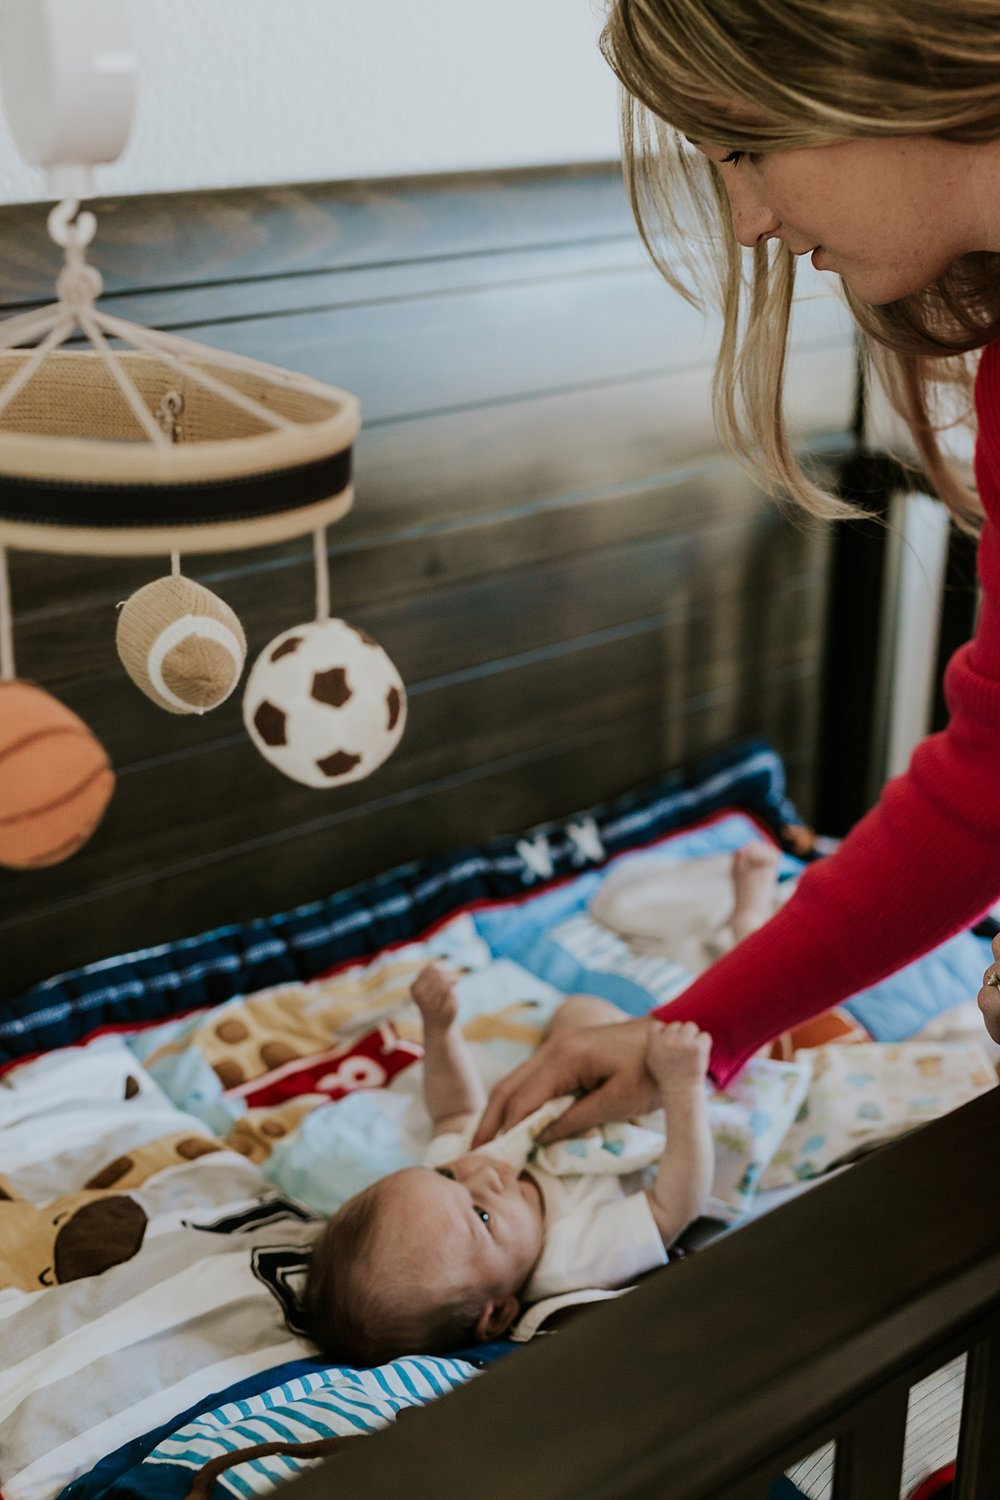 Orange County family photographer. Photo of mom leaning over to touch her newborn son while he lays in his crib during newborn photo shoot in Mission Viejo Orange County